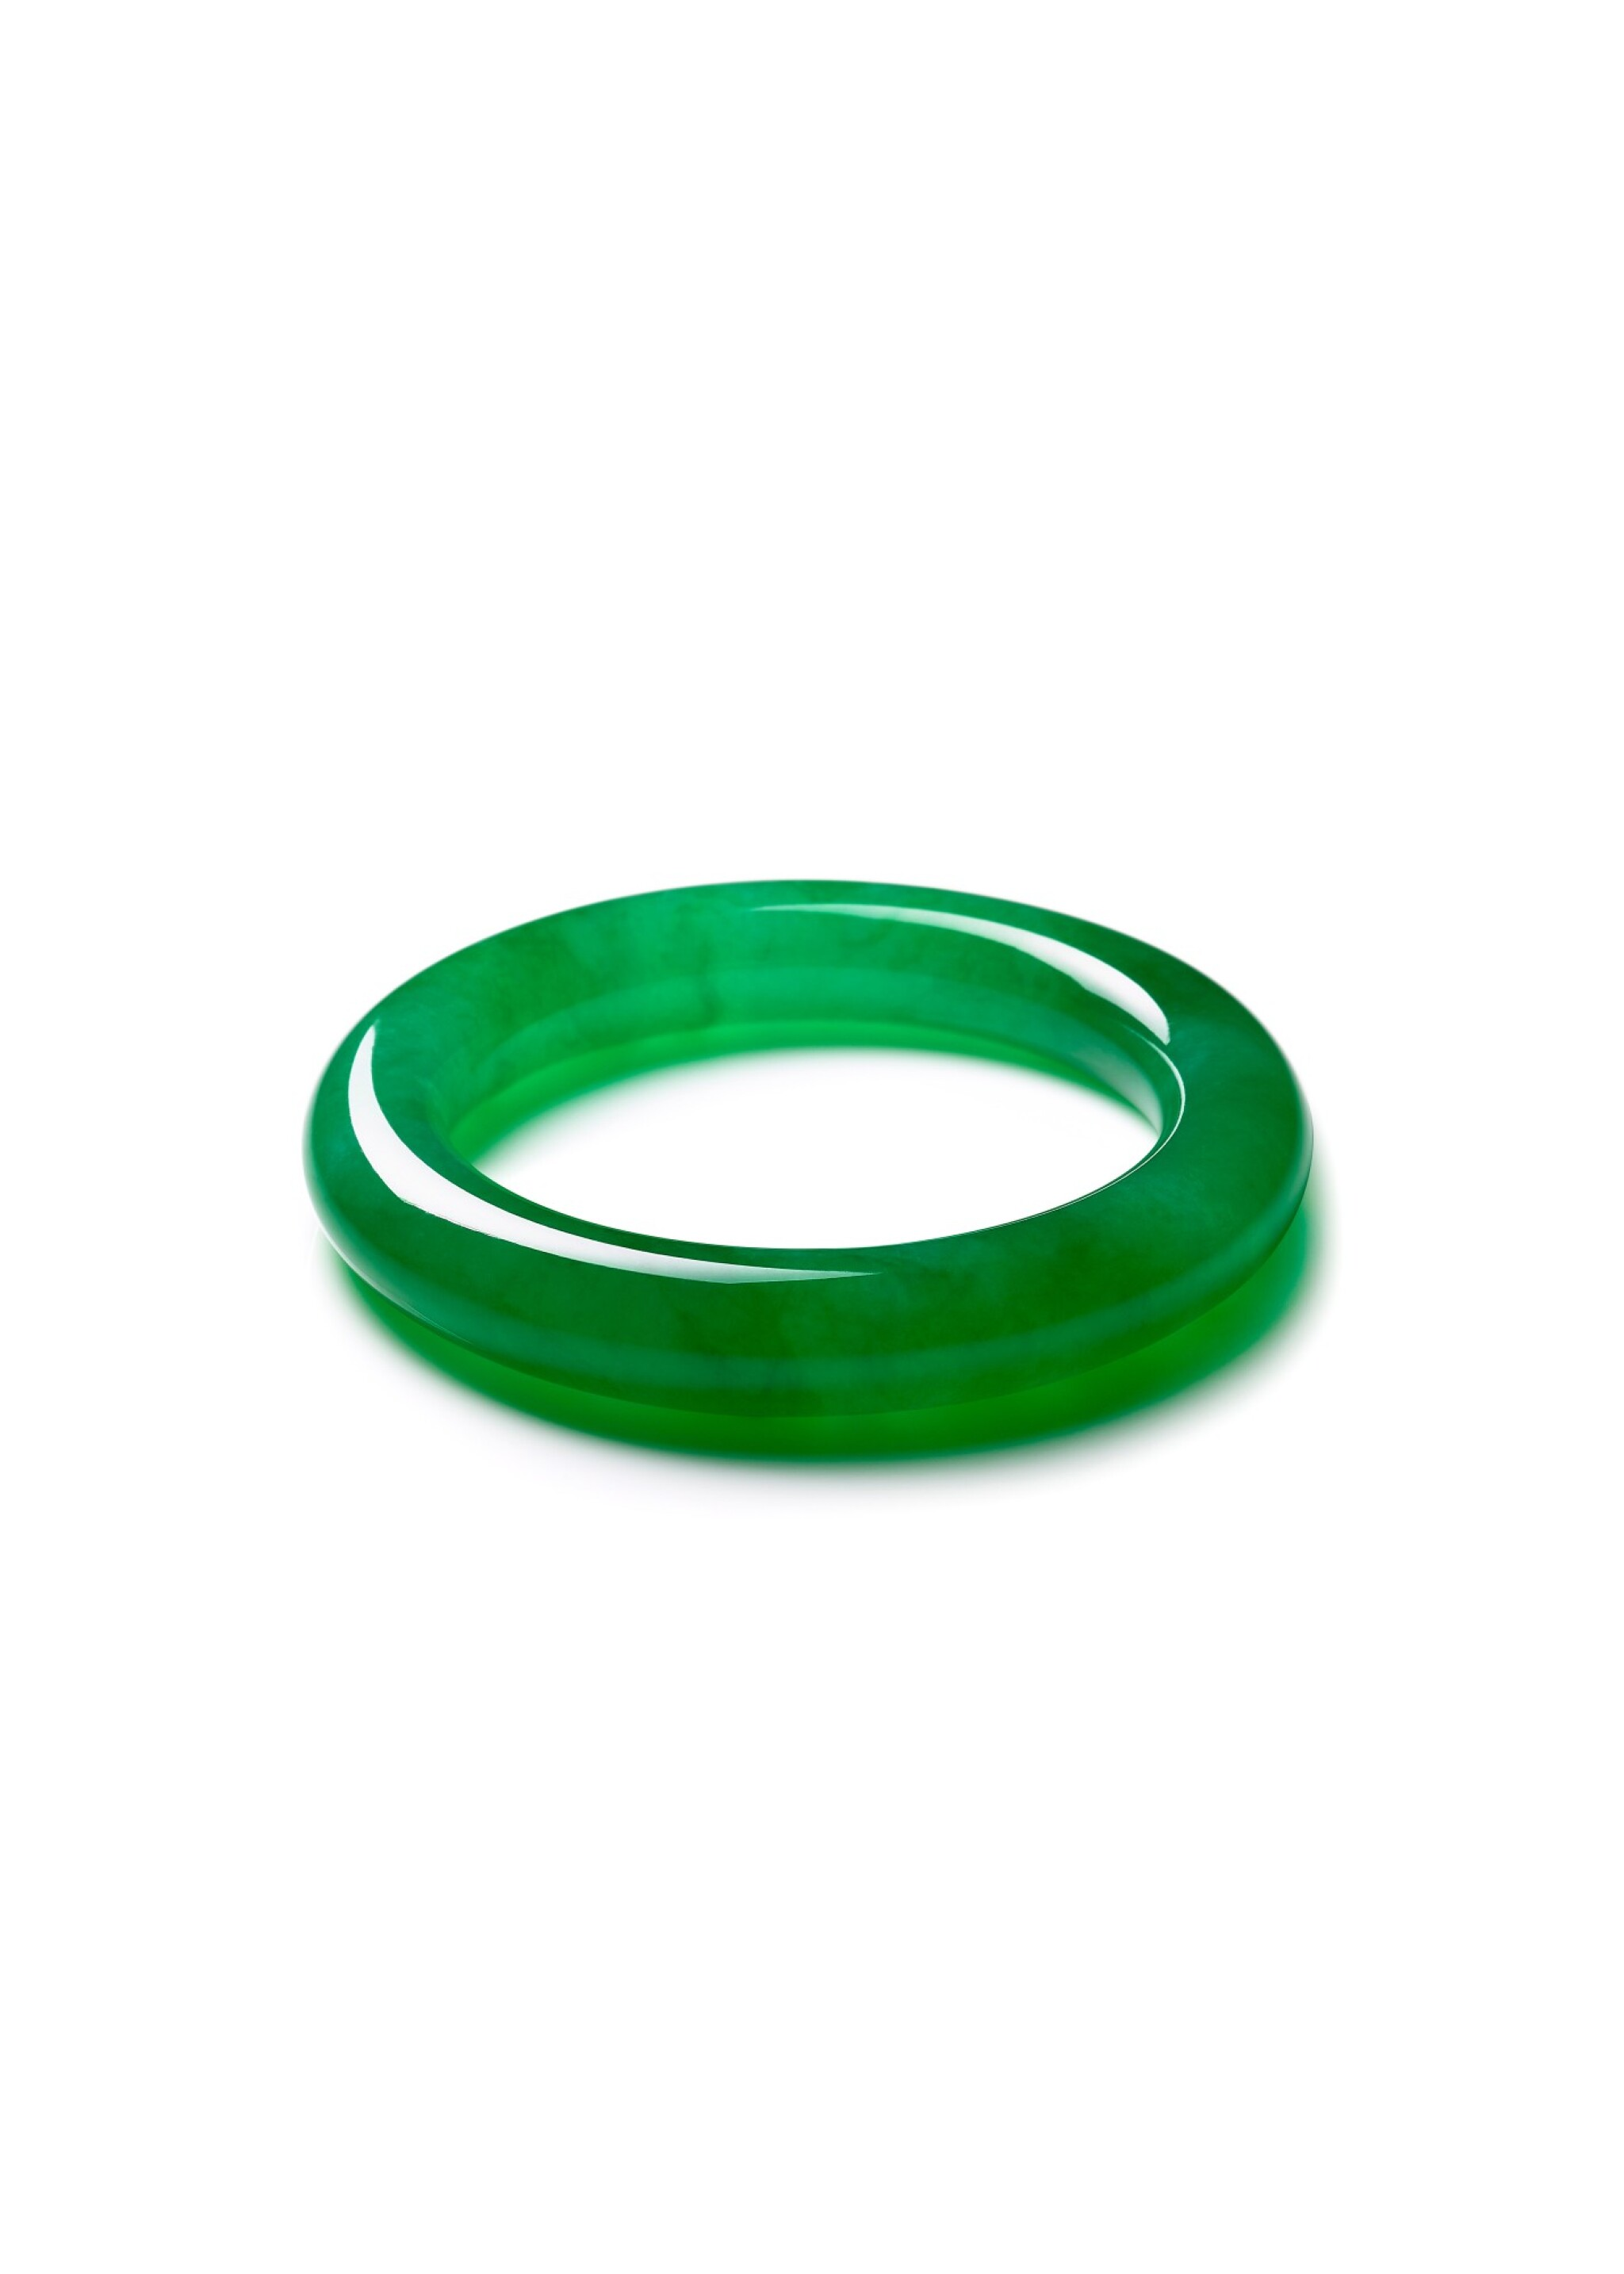 View full screen - View 1 of Lot 1661. A VERY RARE AND IMPORTANT JADEITE BANGLE | 彌足珍品 天然翡翠滿色手鐲.